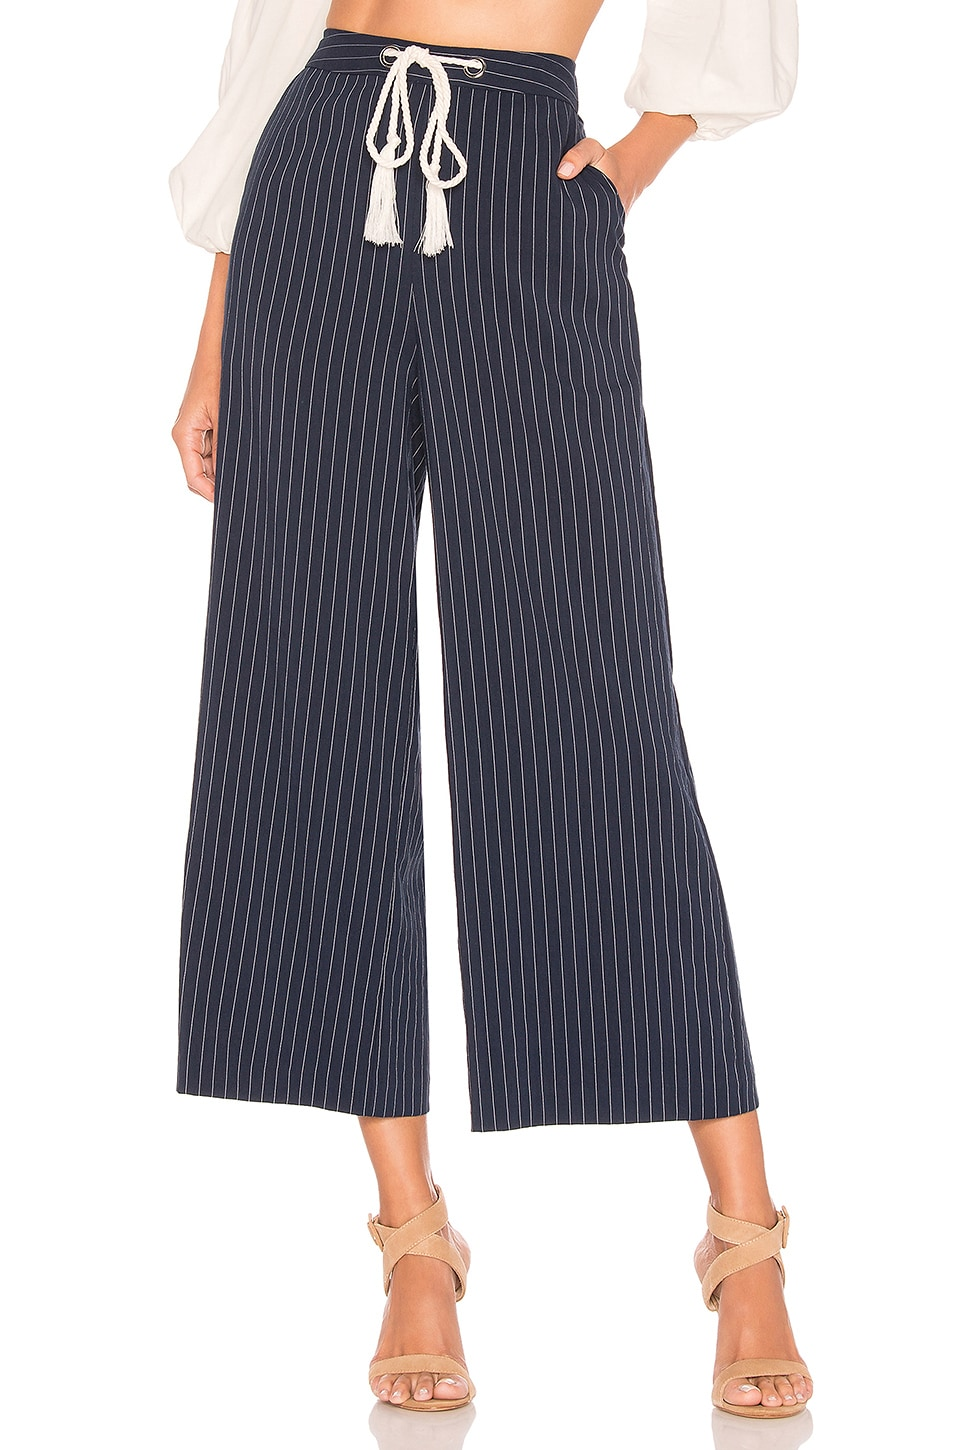 L'Academie Clayton Pants in Navy